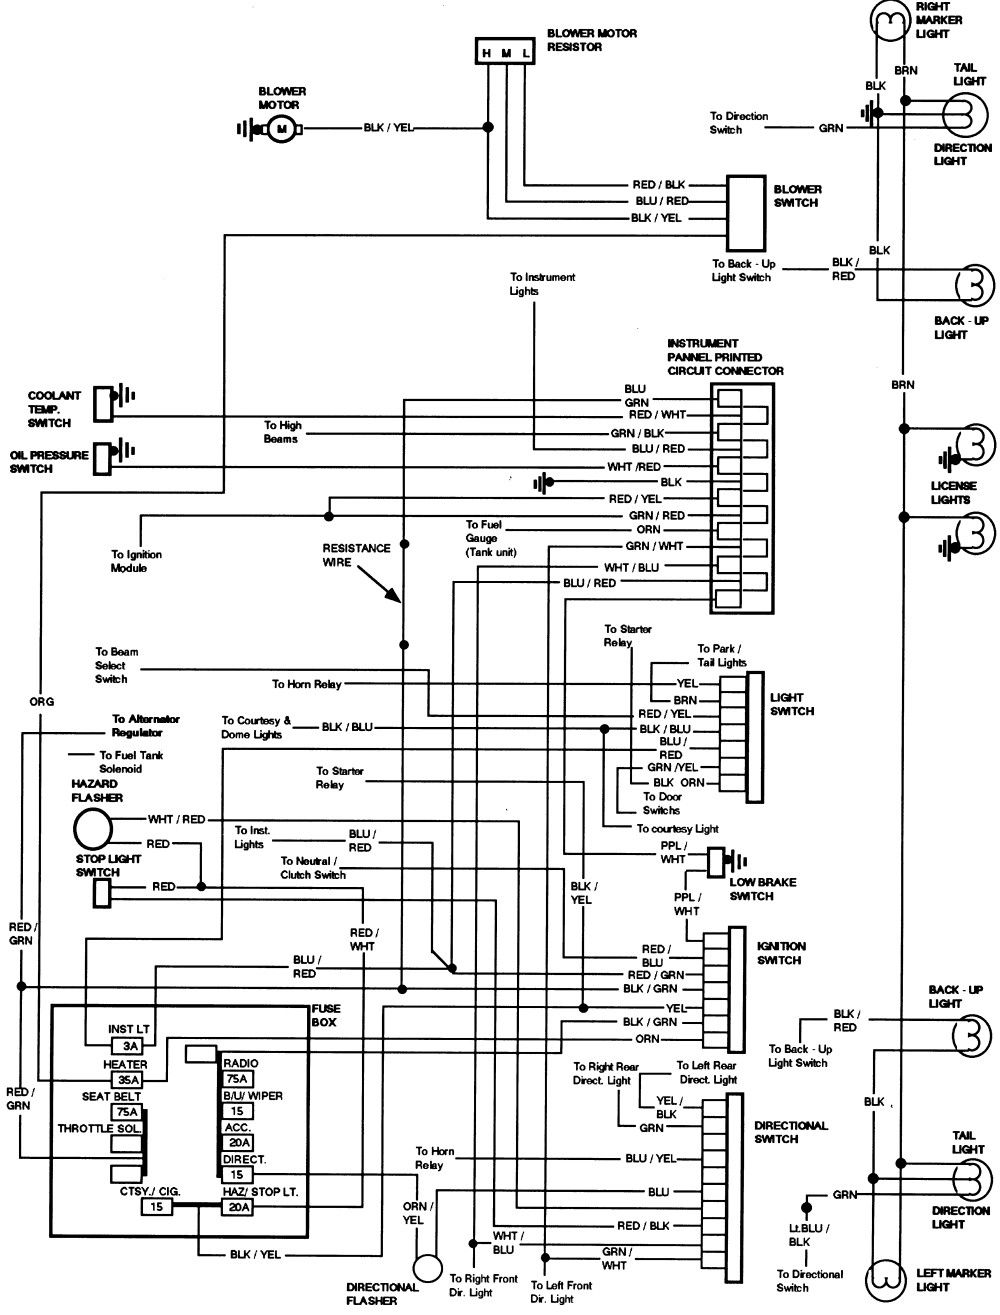 [SCHEMATICS_4ER]  Ford Ignition Switch Wiring Diagram | Ford f250, Ford f350 diesel, Ford | Ford Truck Wire Diagram F 350 Diesel 94 |  | www.pinterest.ph